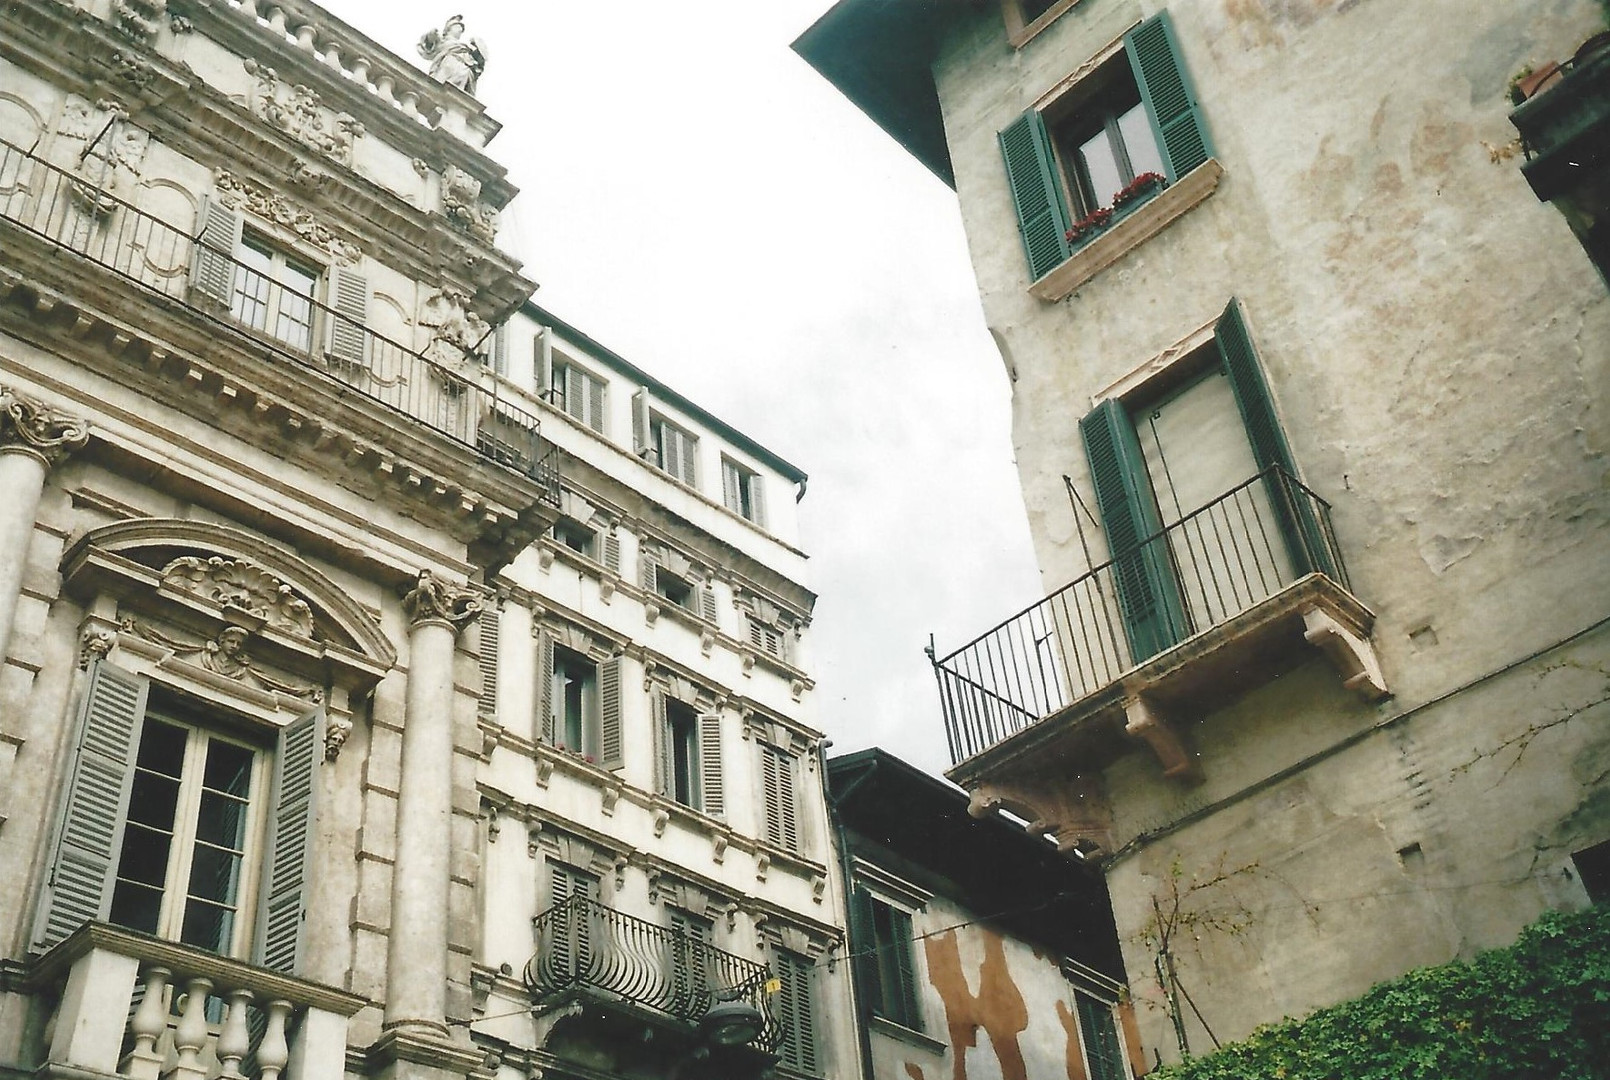 Italy- Copyright of Sarah Oglesby 2020